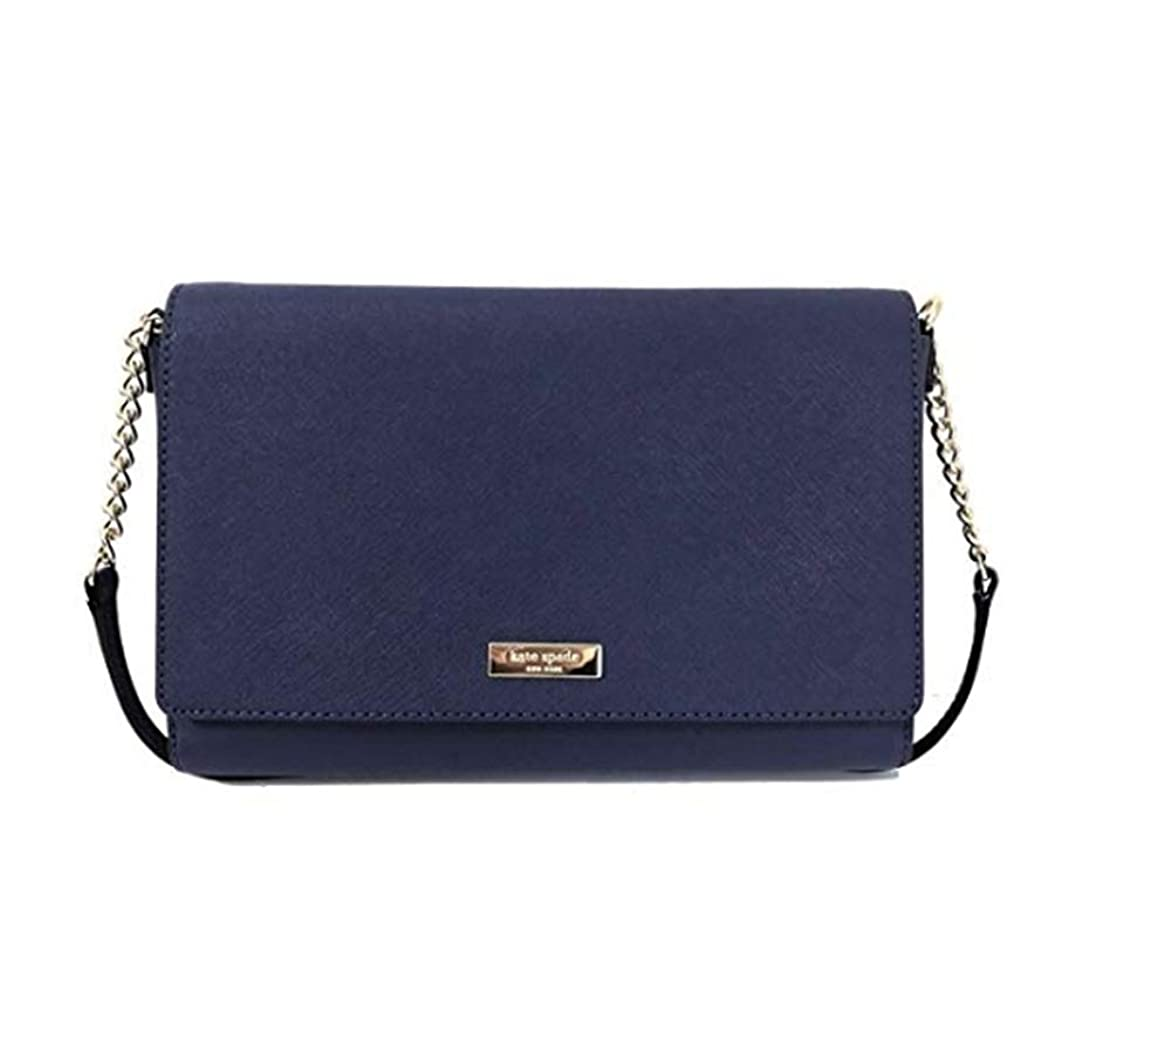 修正従来の百[(ケイト·スペード)]{Kate Spade New York Tilden Place Alek Leather Crossbody Handbag (並行輸入品) (Sapphire)